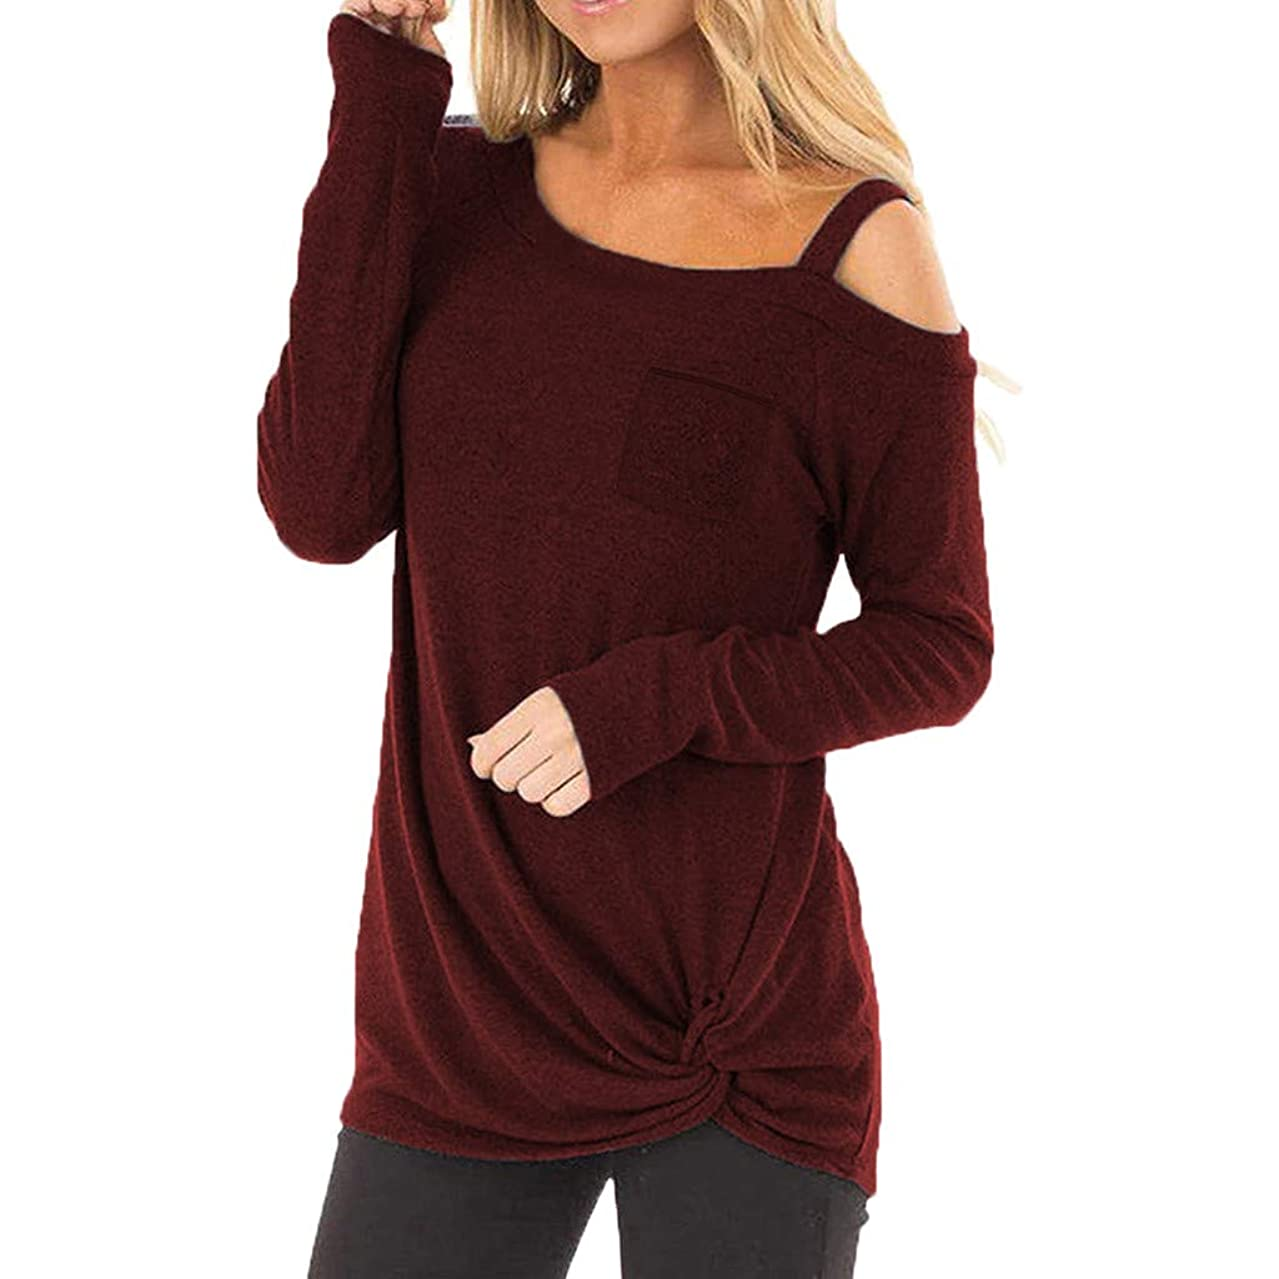 Fashion Loose Top Womens Casual Soft Long Sleeves O Neck Knot Side Twist Blouse Top T-Shirt